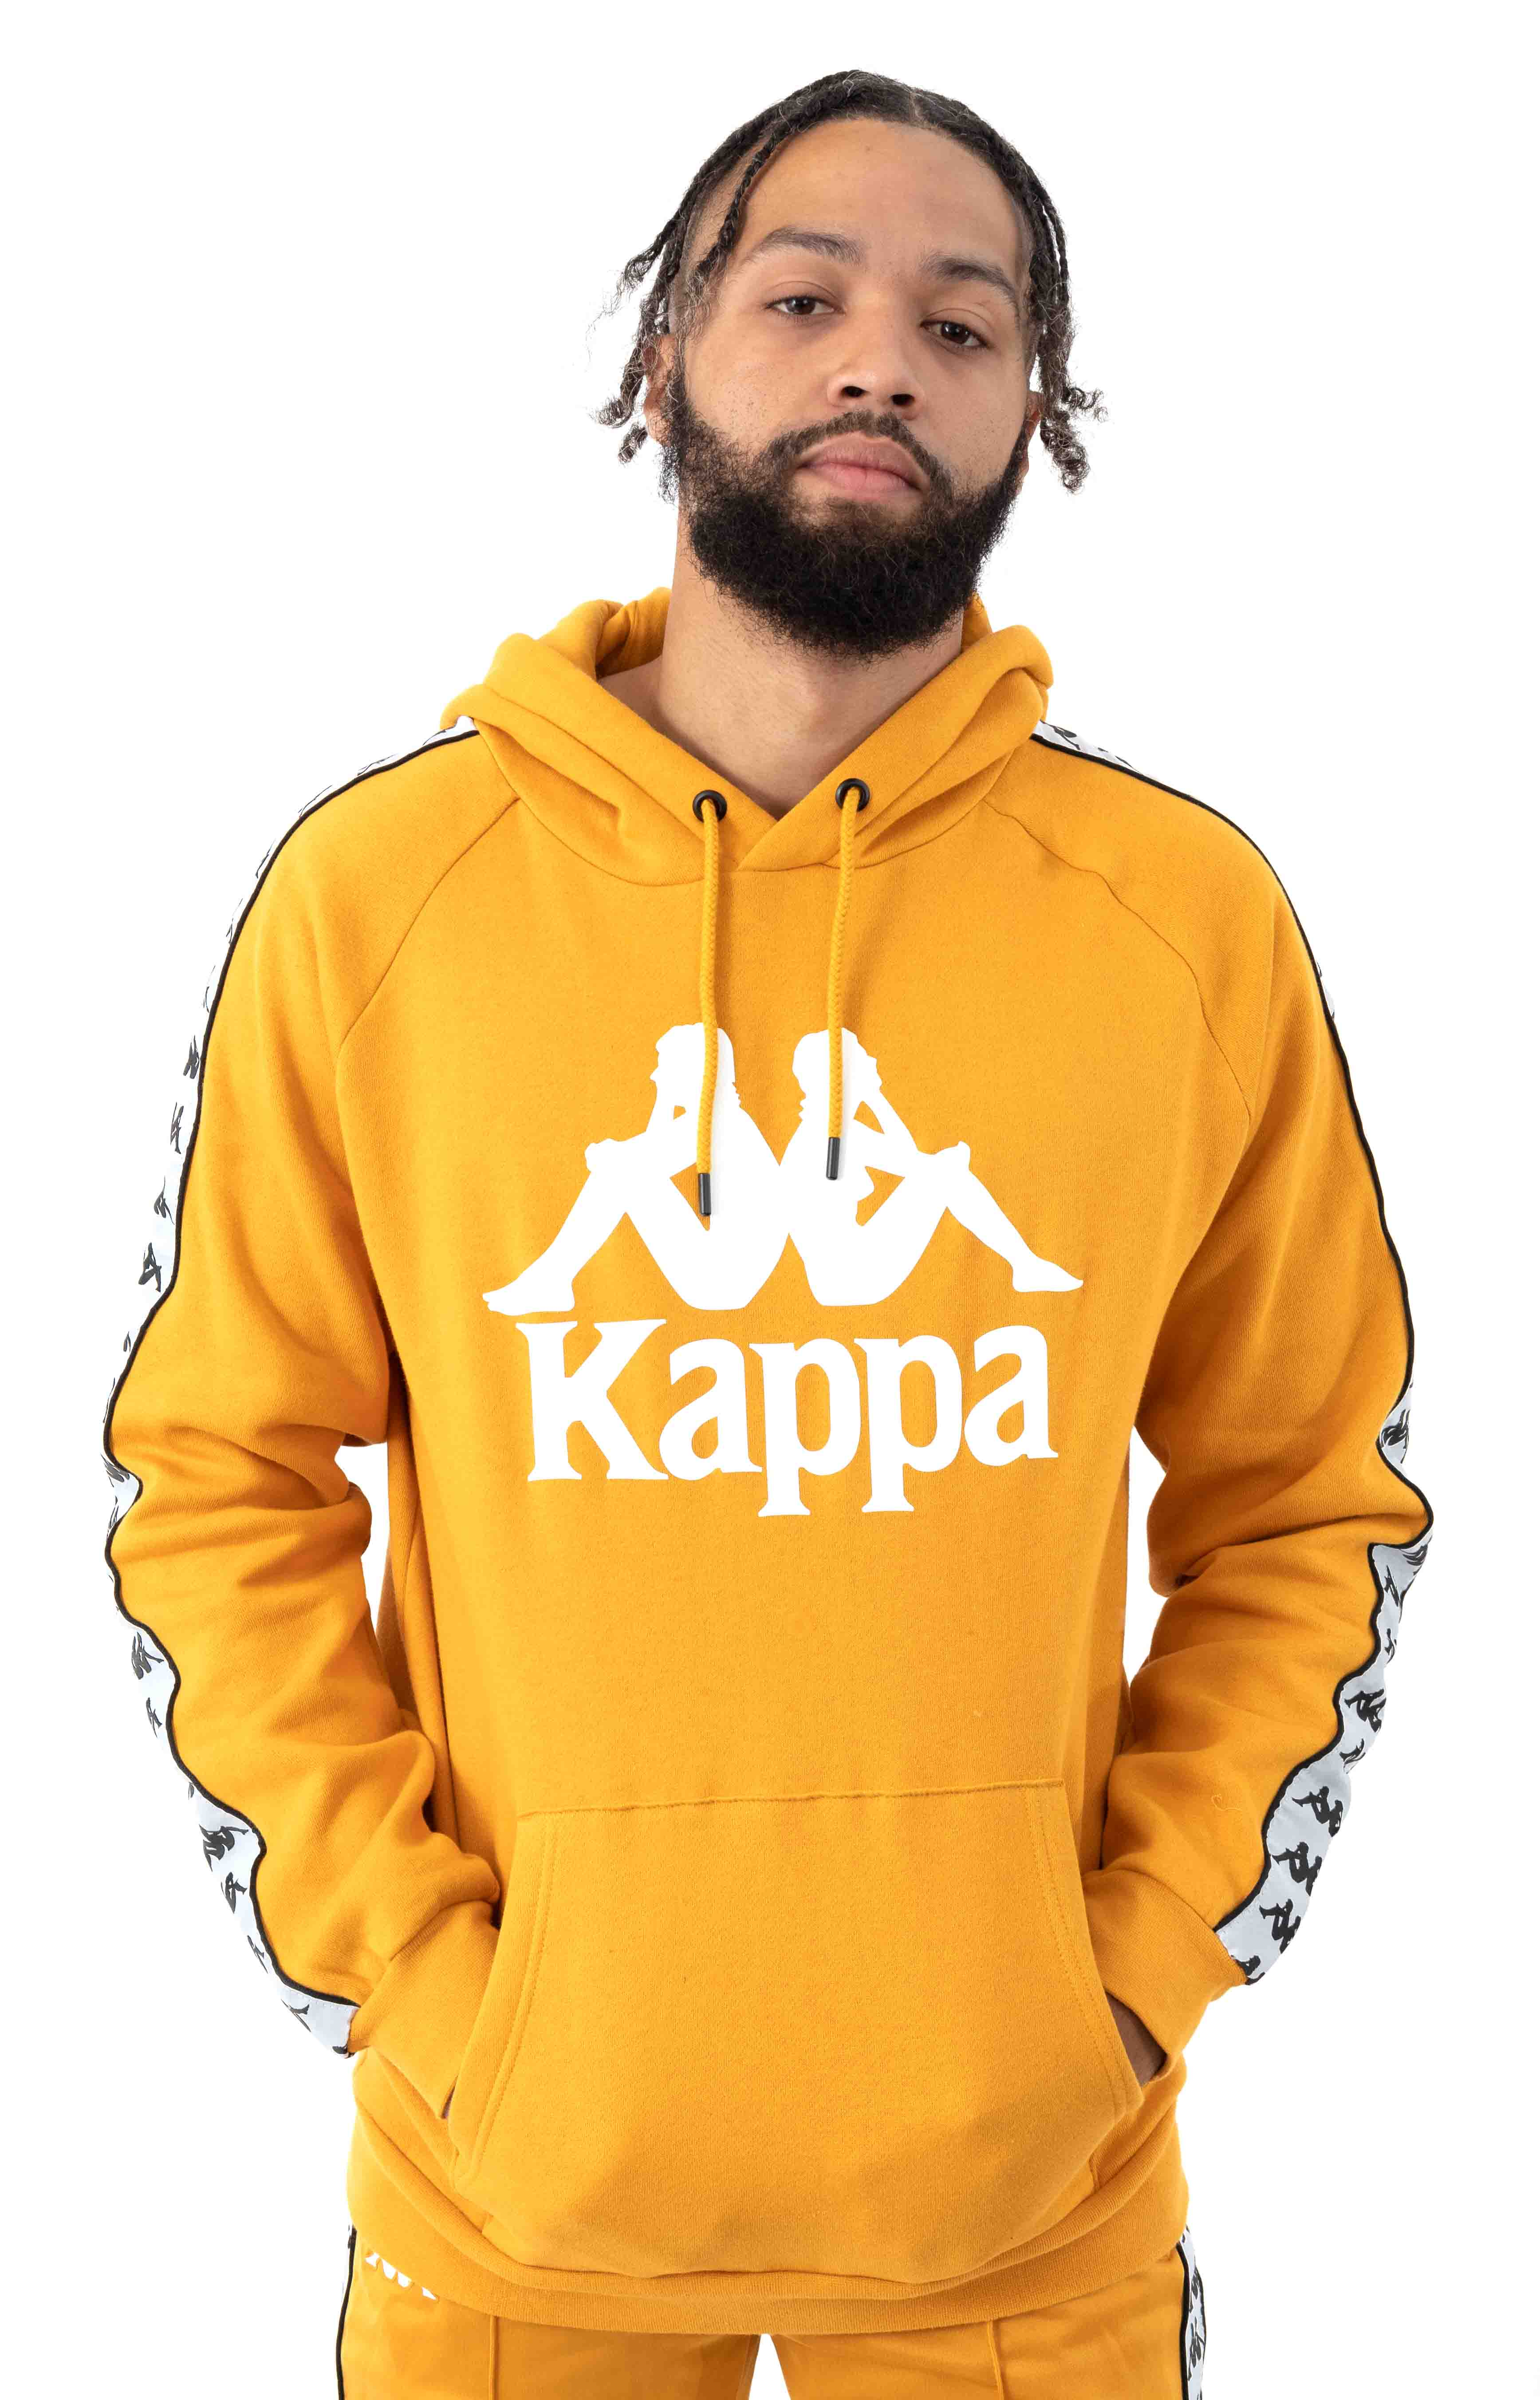 222 Banda Authentic Hurtado 2 Pullover Hoodie - Yellow Ochre/White